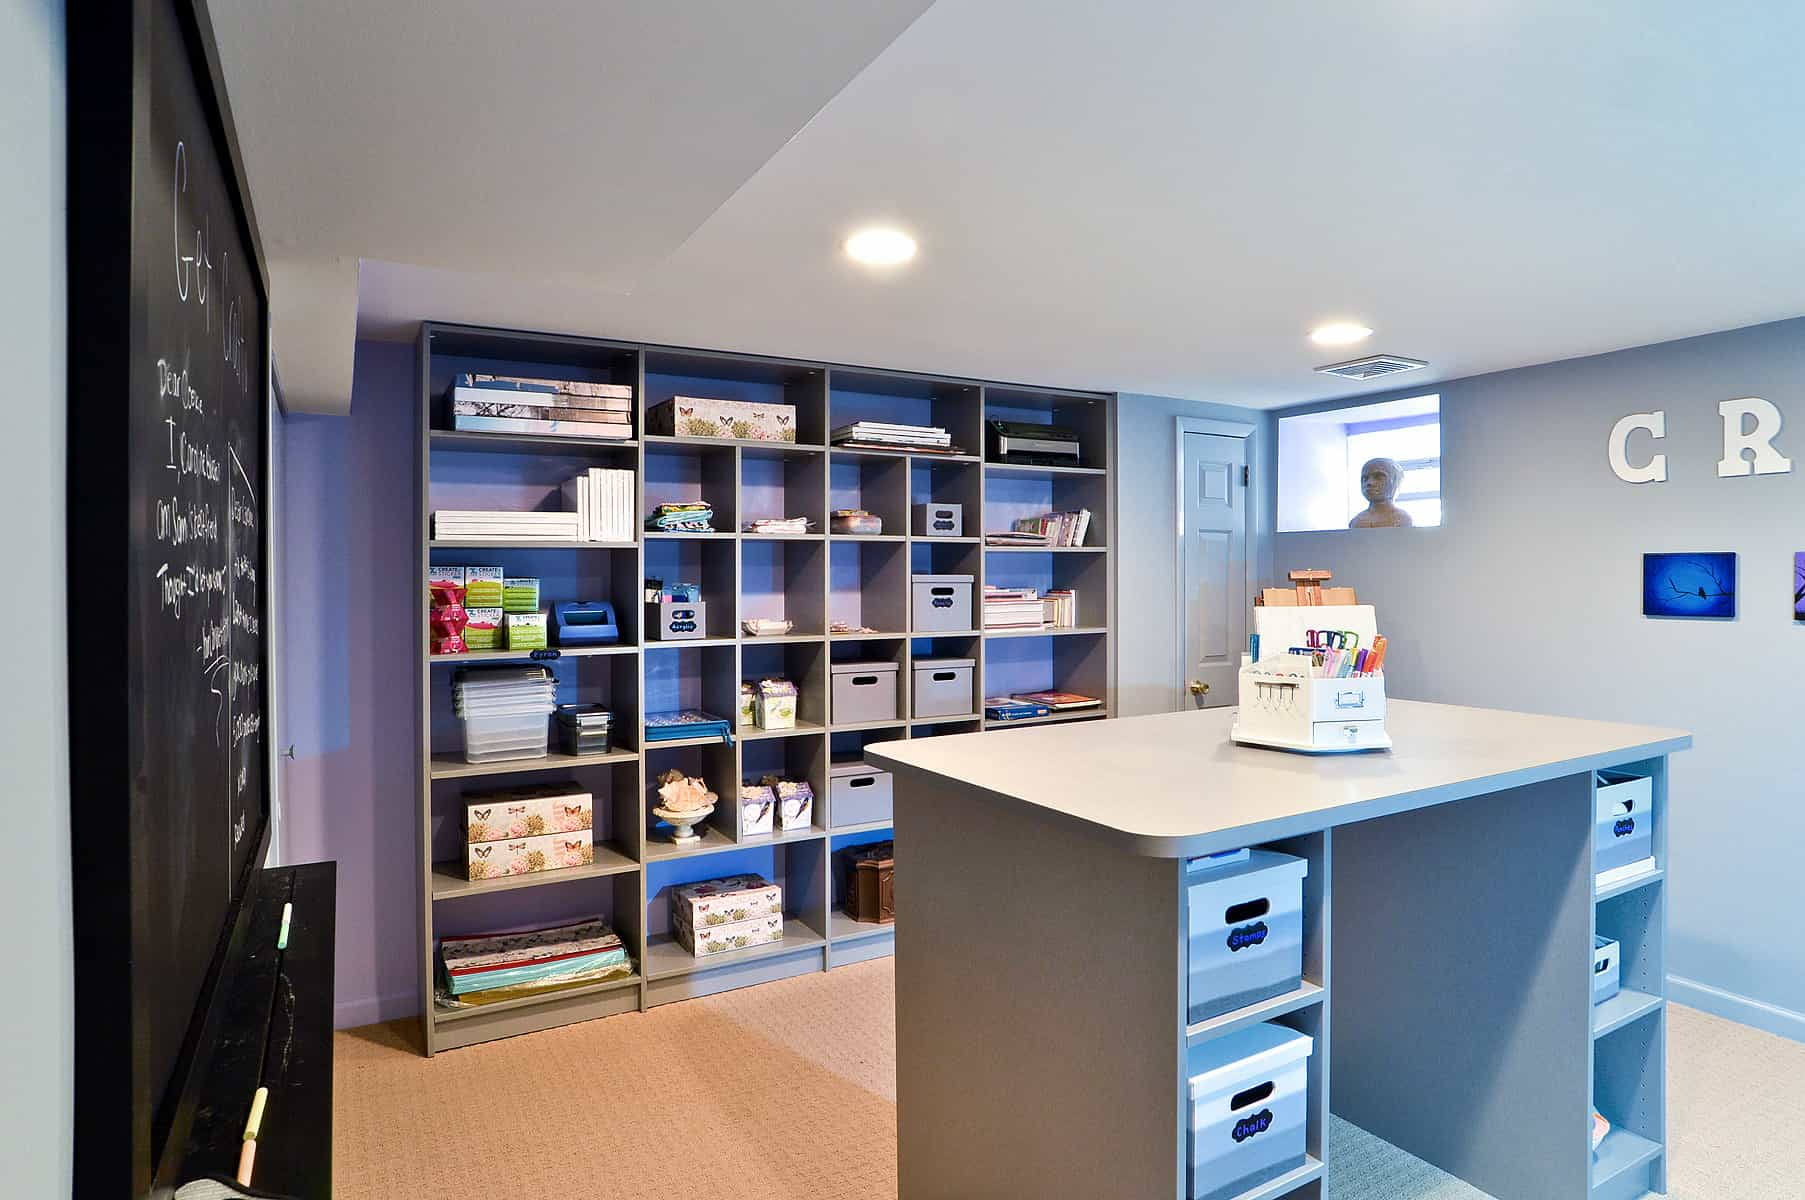 Craft rooms are all the rage as they serve many purposes such as crafts, sewing, office, gift wrapping and more. In today's age of DIY and crafting, more and more homeowners are building craft rooms. This is a beauty with loads of storage by Closet Works.